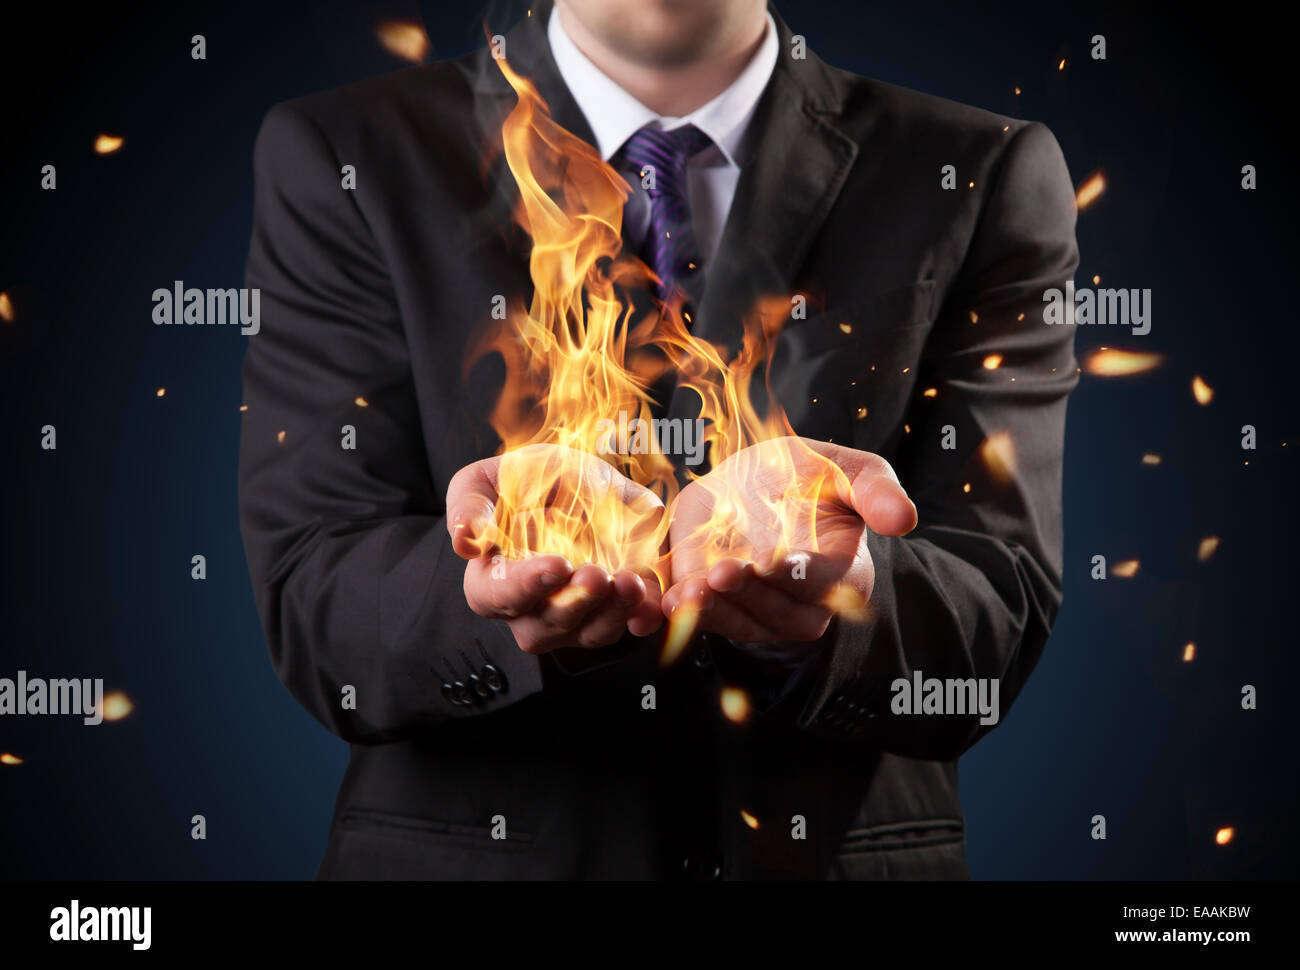 Businessman with fire in hands. Concept of threats and manager responsibility - Stock Image